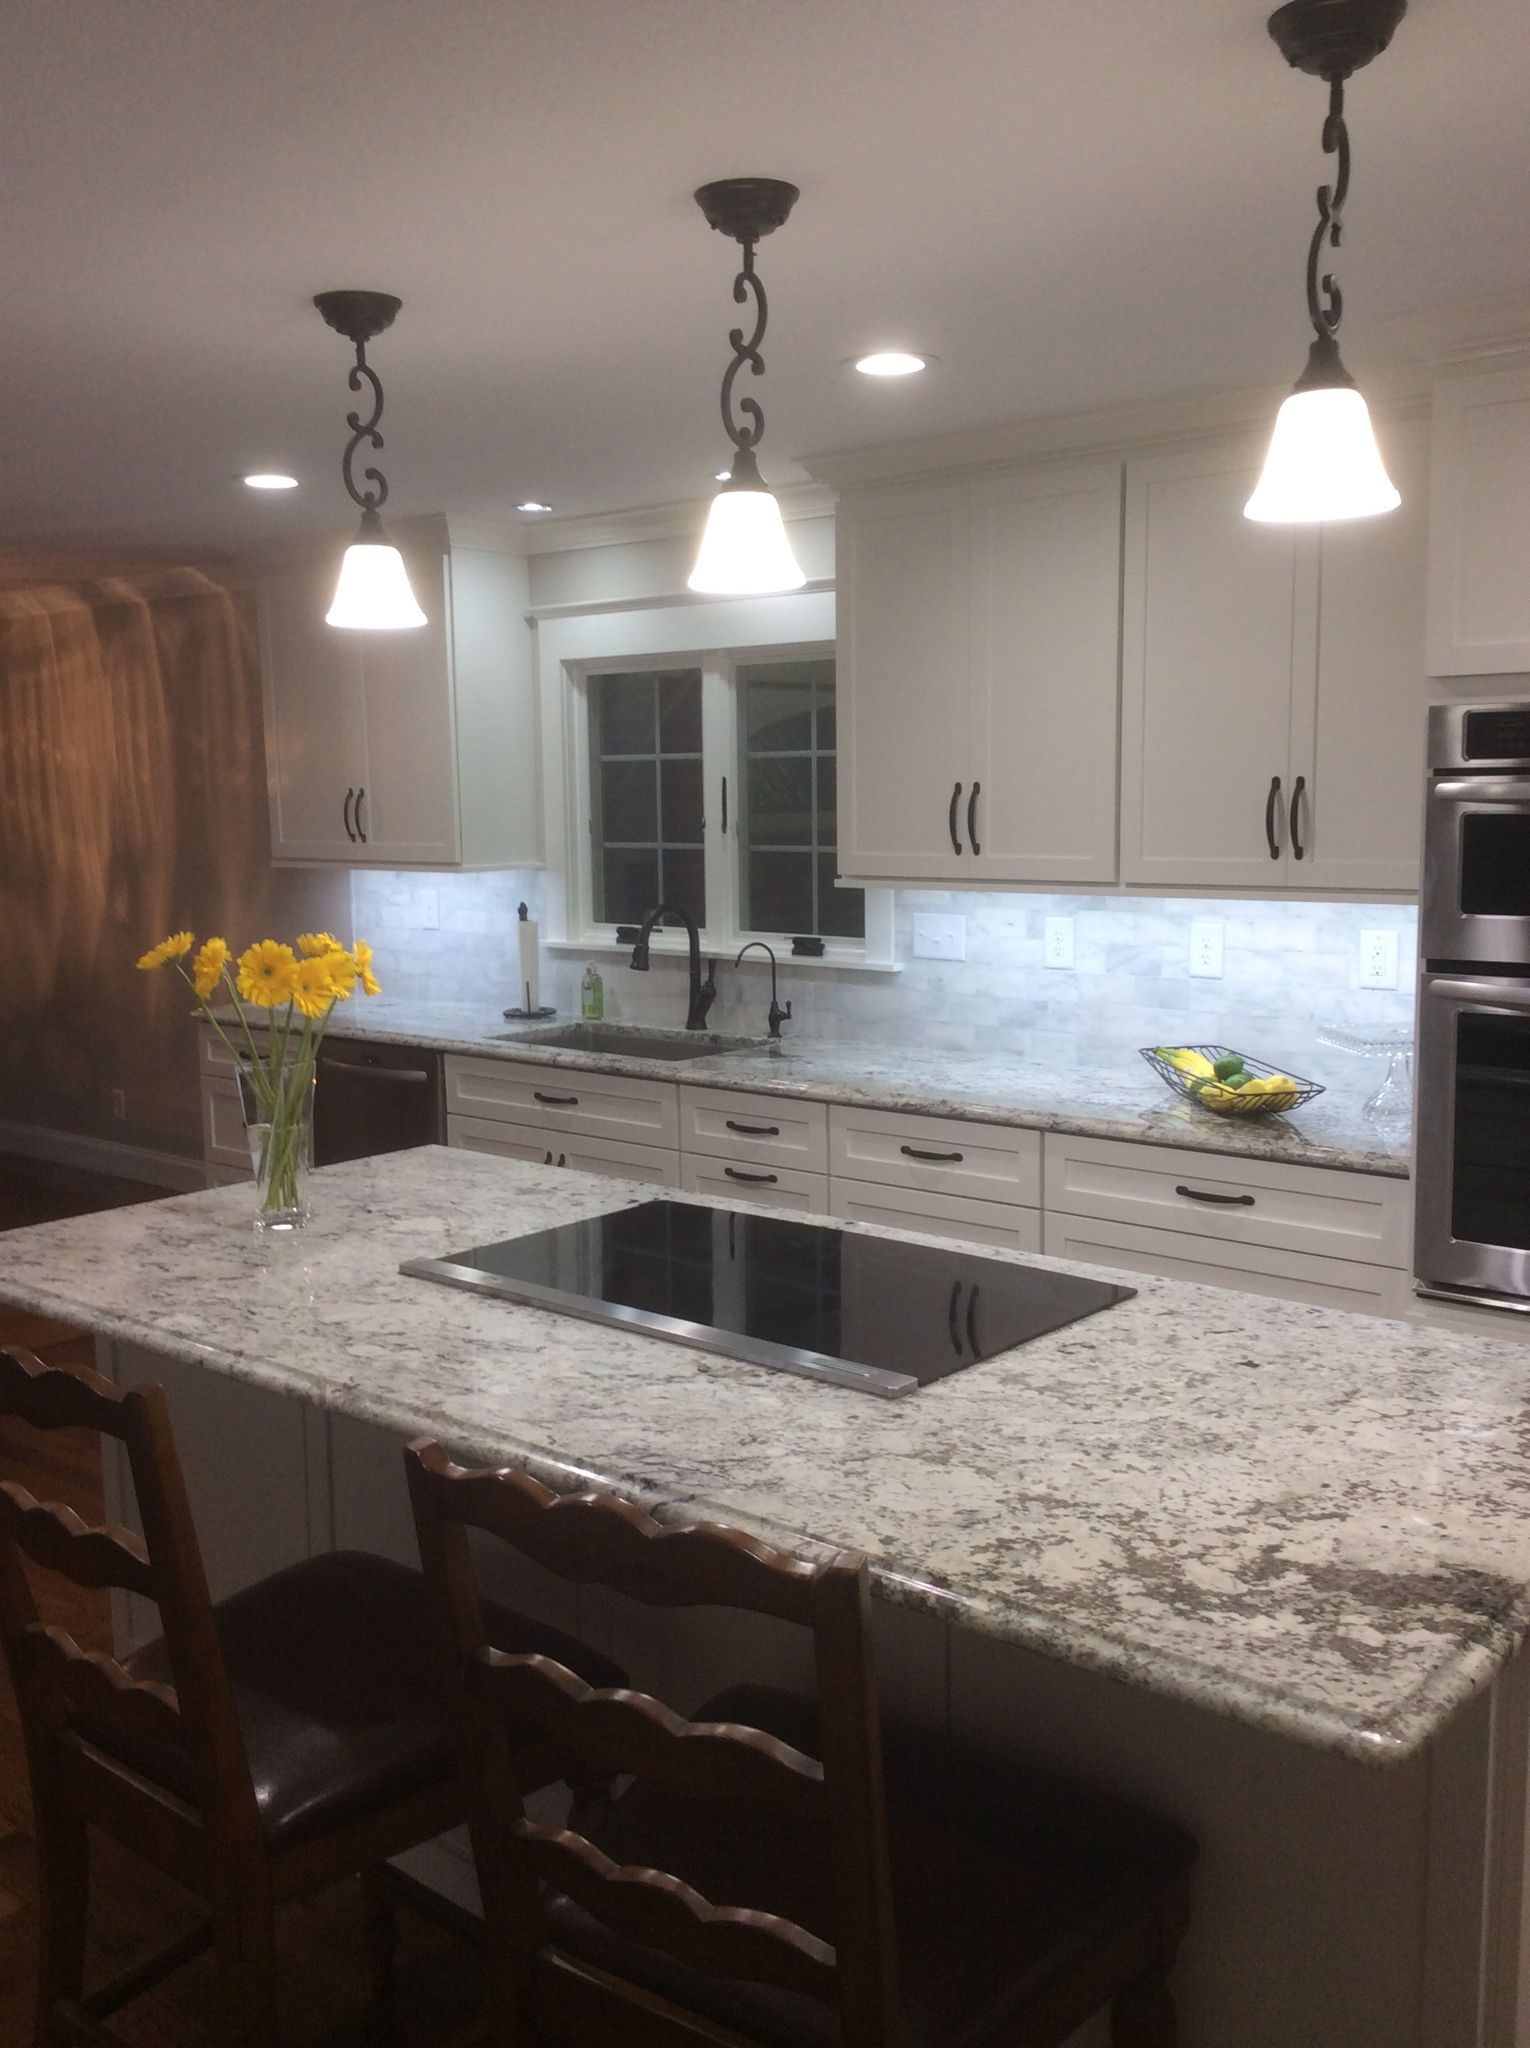 White Ice Granite Kitchen My New Kitchen White Shaker Cabinets And White Ice Granite New